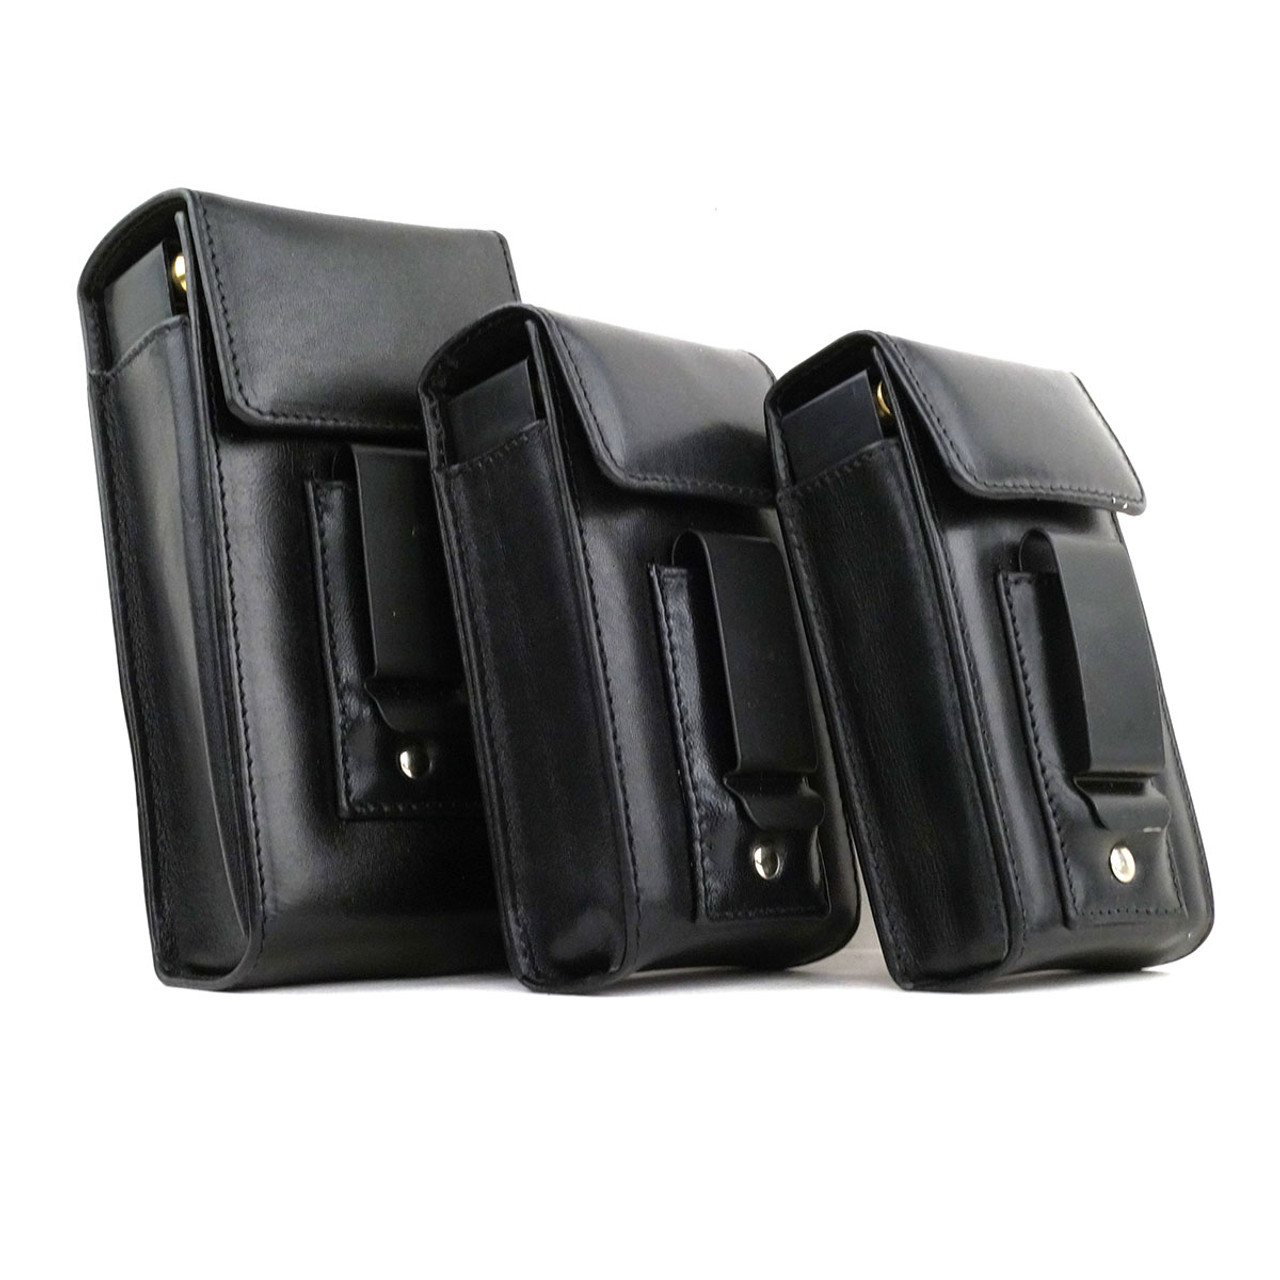 Colt Mark IV Series 80 (.380) Leather Arsenal 50 Round Belt Case